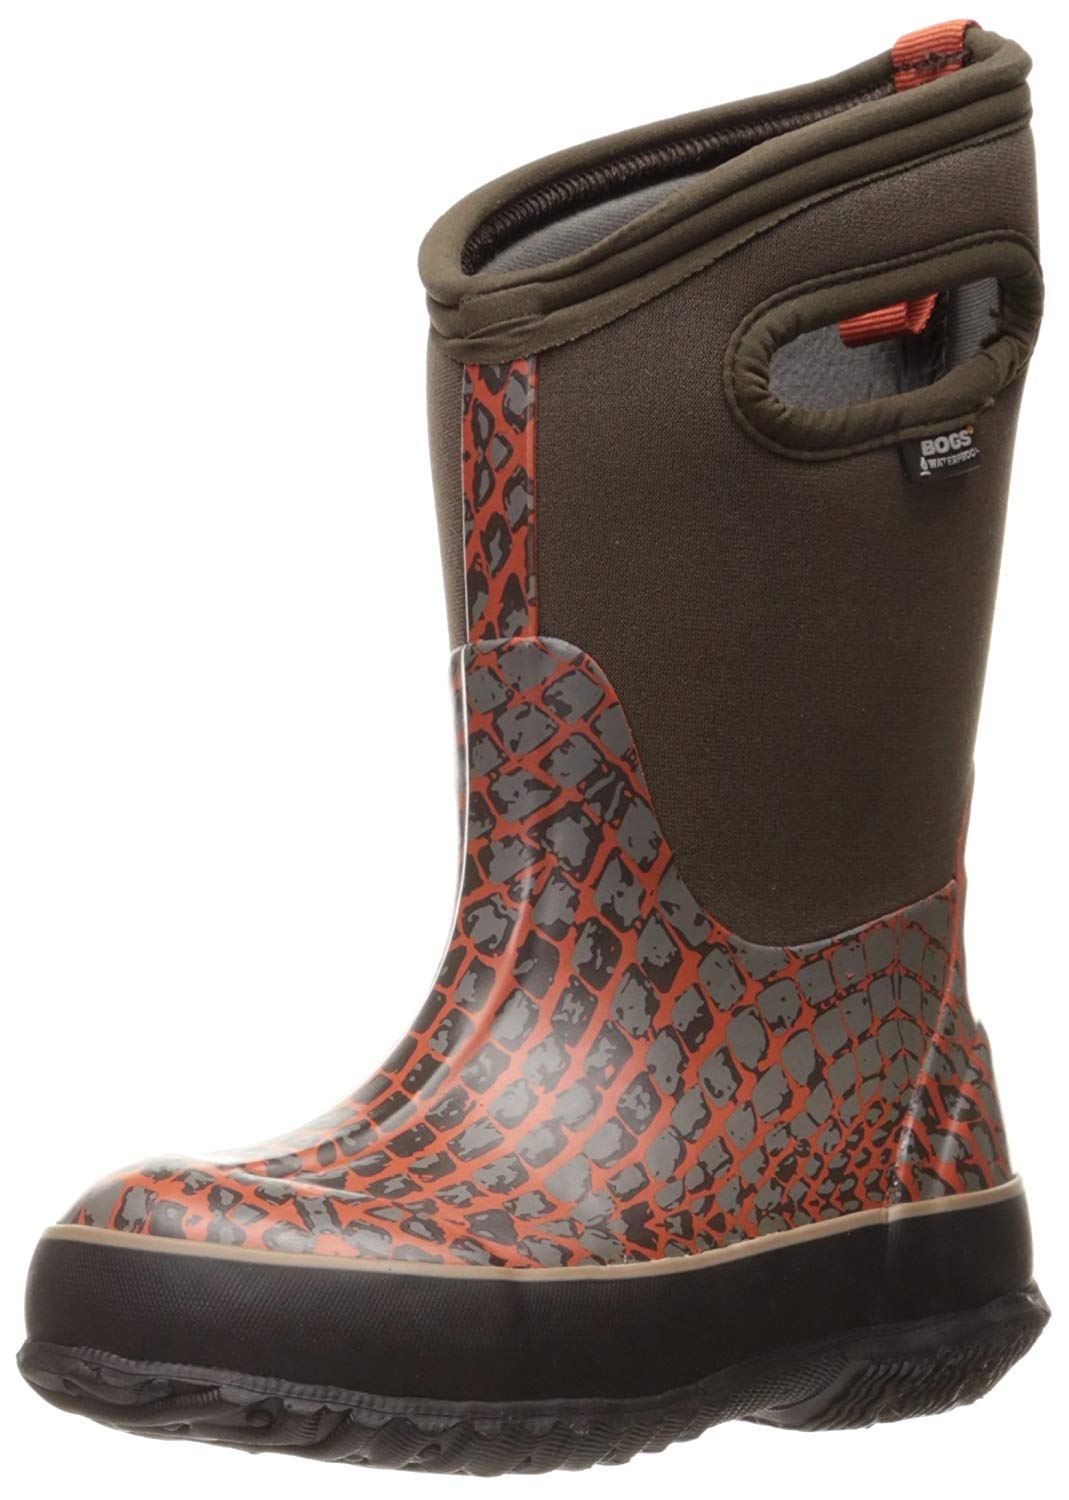 7d23ef7478e Cheap Bogs Neoprene Boots, find Bogs Neoprene Boots deals on line at ...